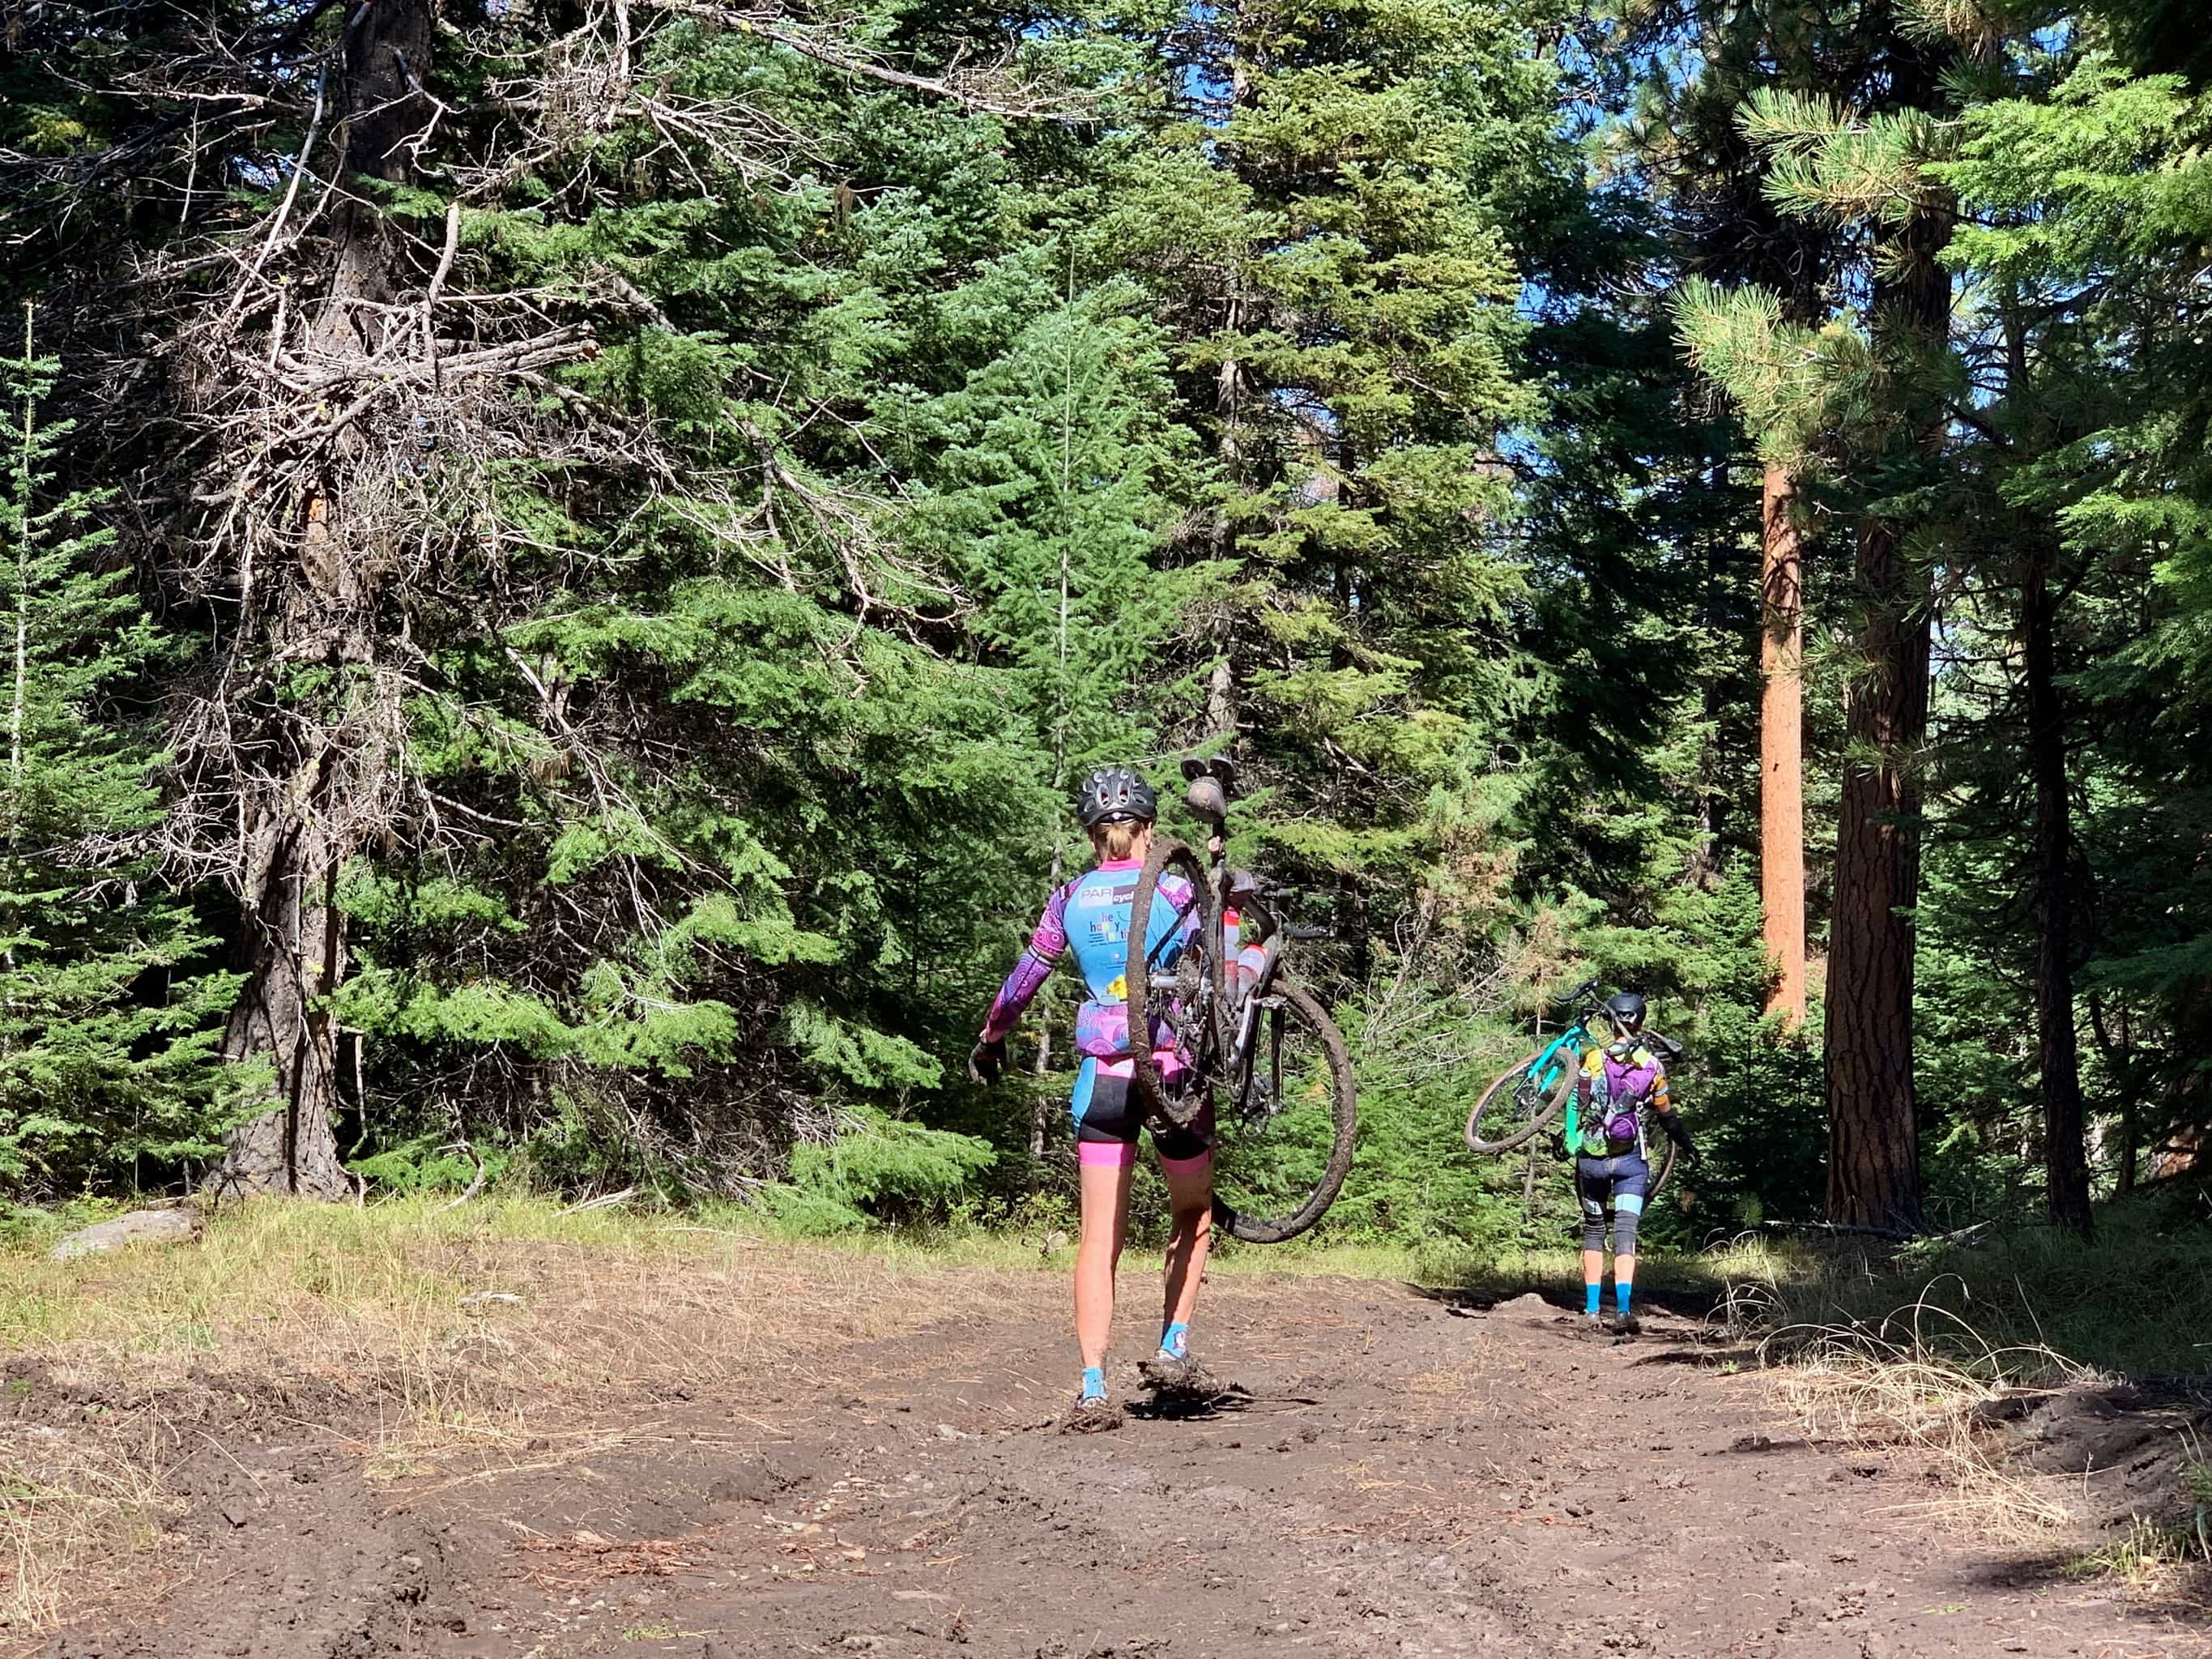 Two gravel girls carrying bikes through muddy / boggy road in Ochoco mountains.